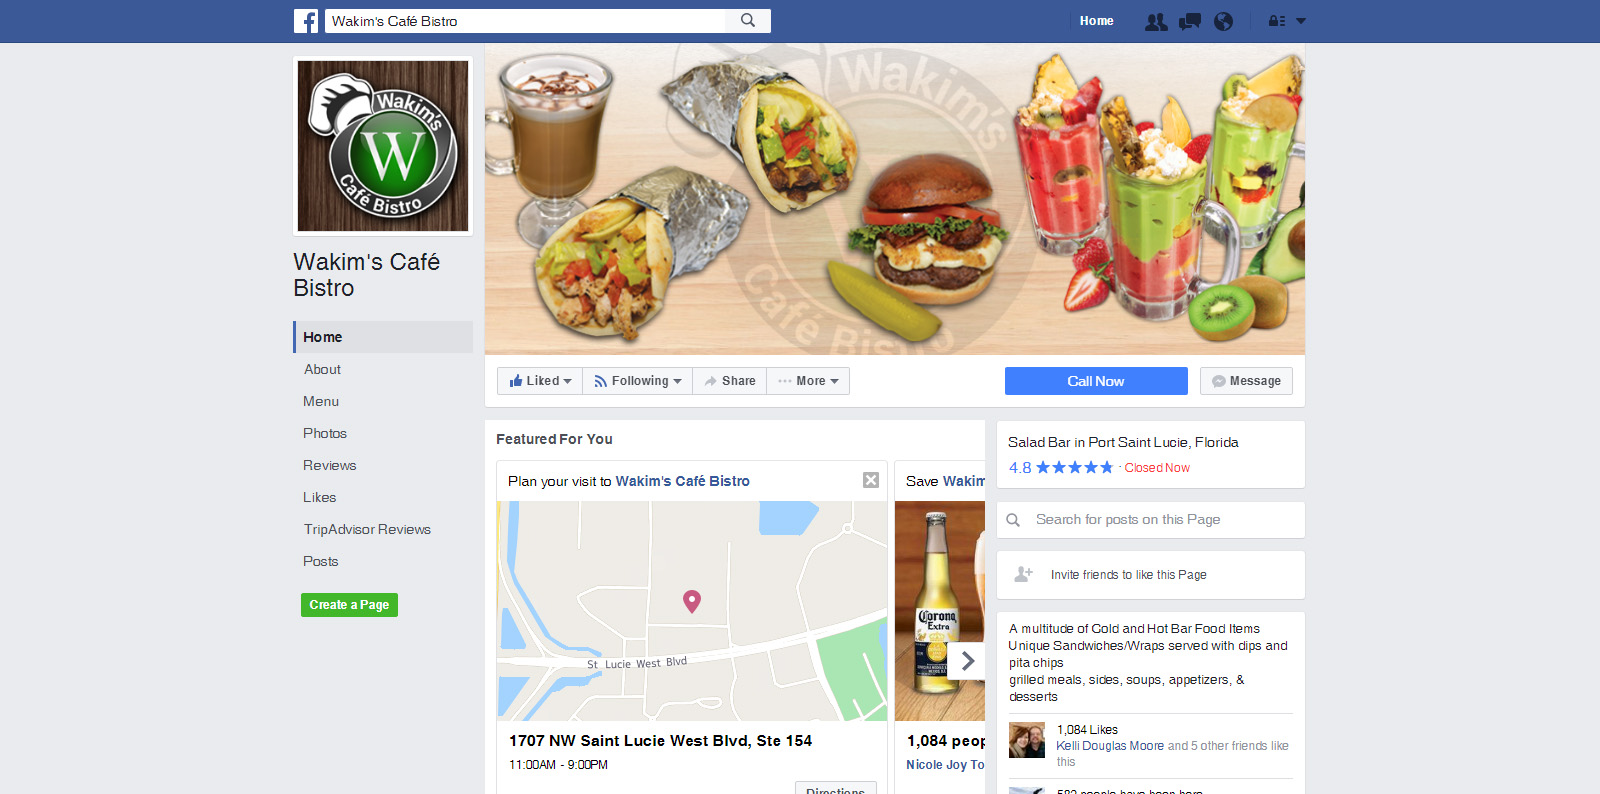 Wakim's Cafe Bistro - Social Media Marketing